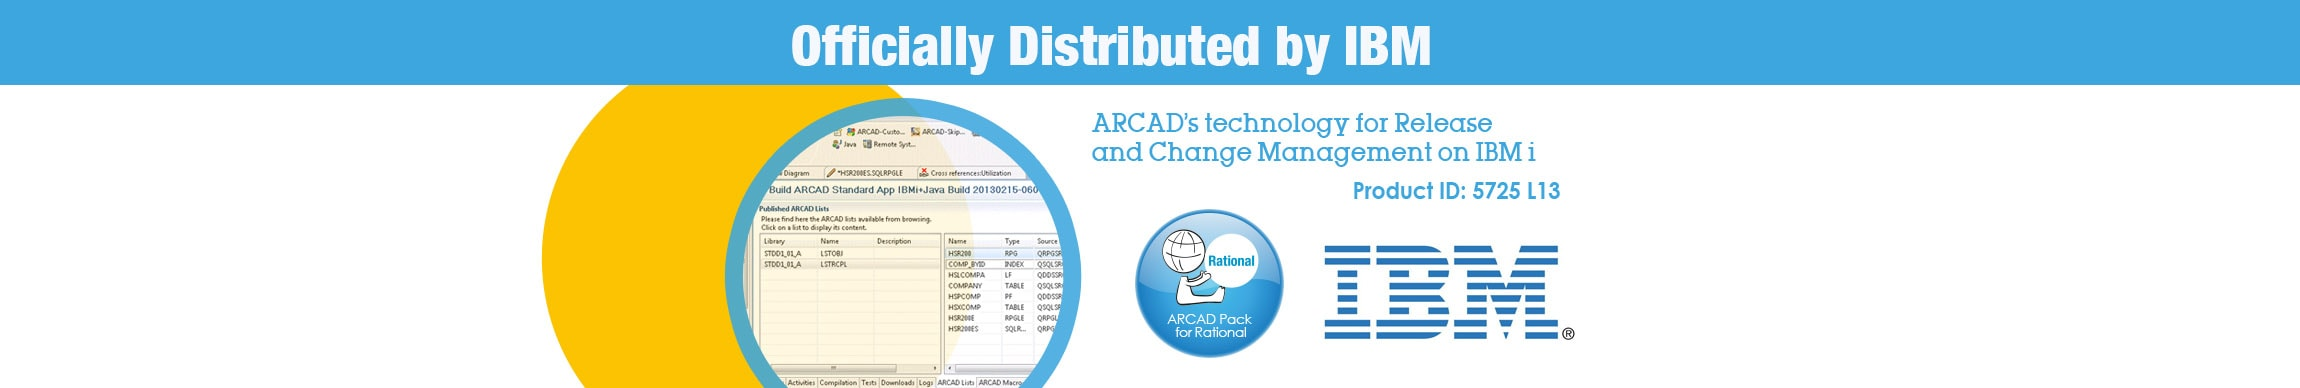 arcad-officially-distributed-by-IBM-banner